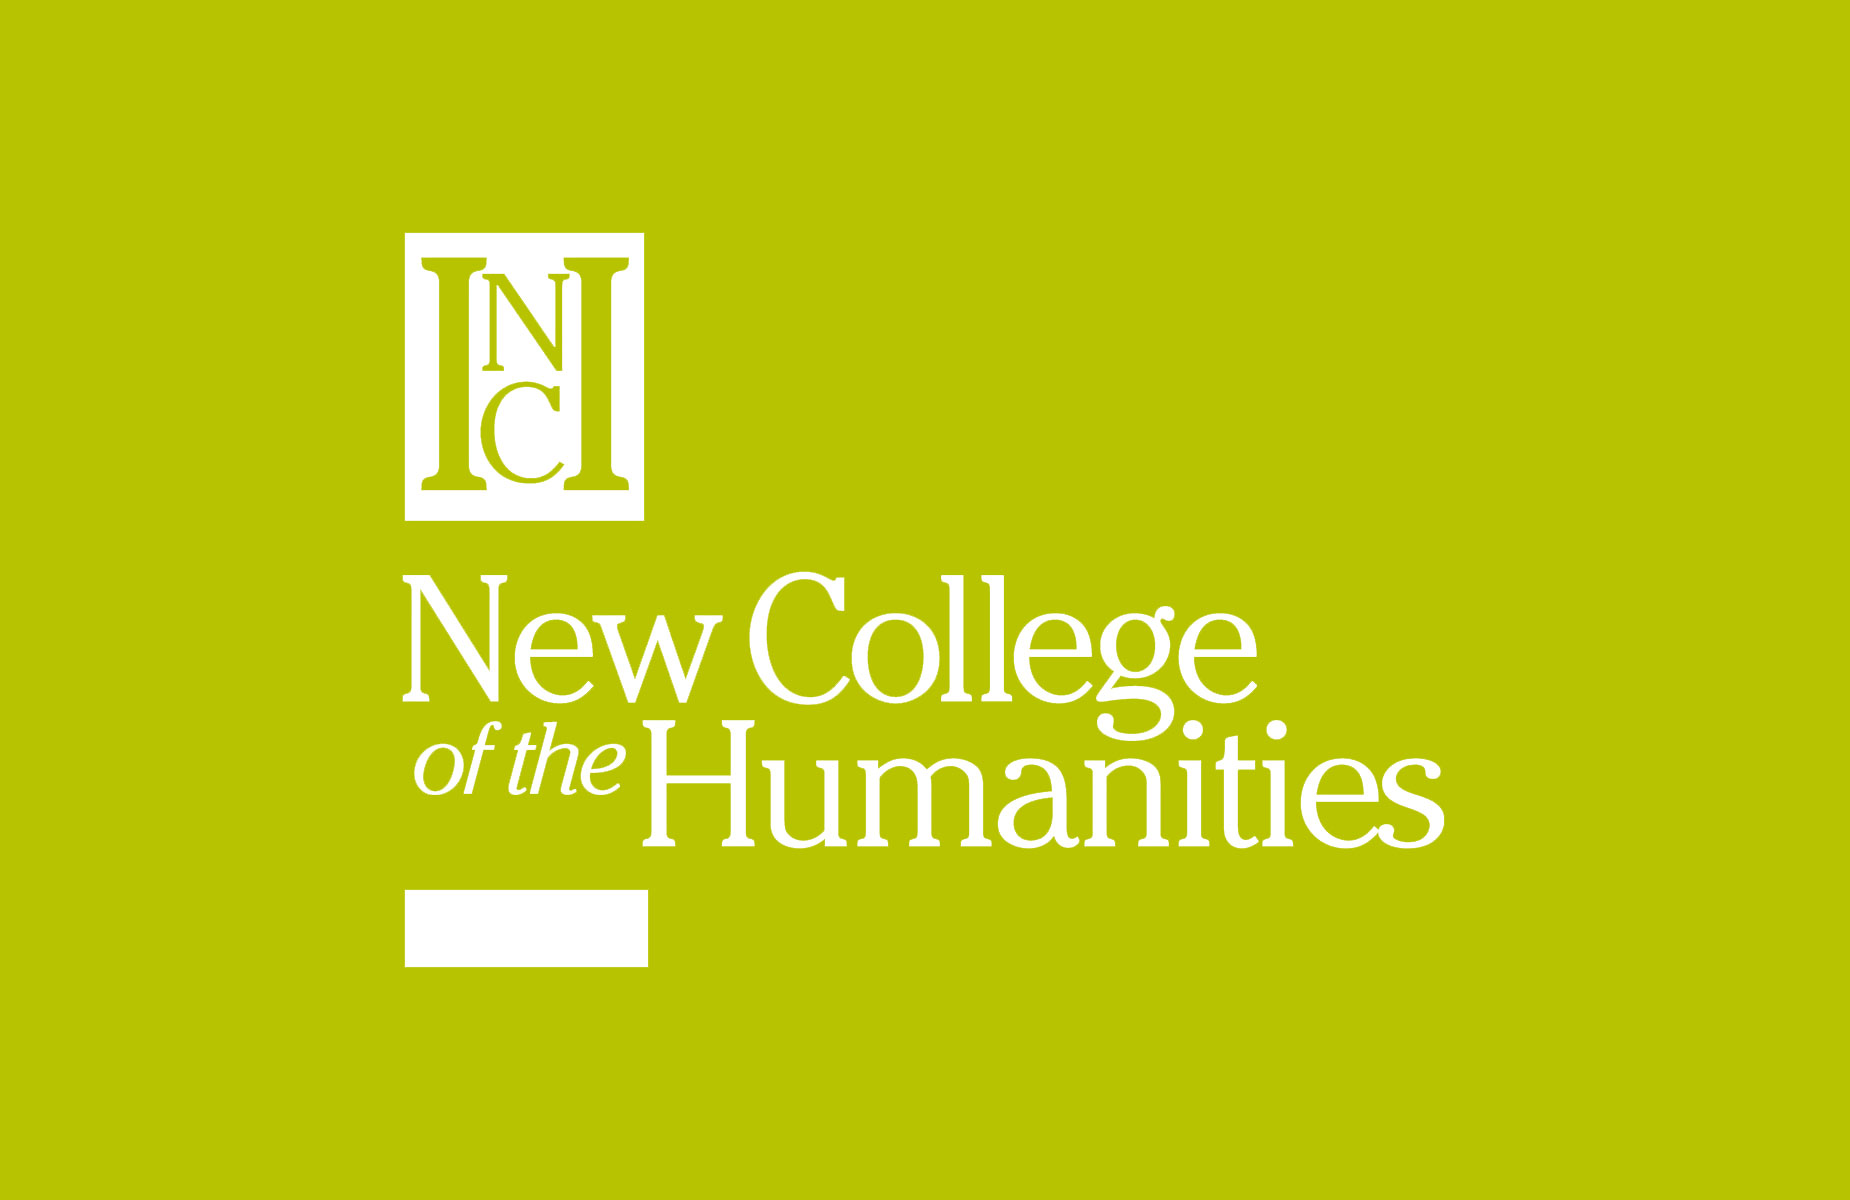 New College of the Humanities - View case study